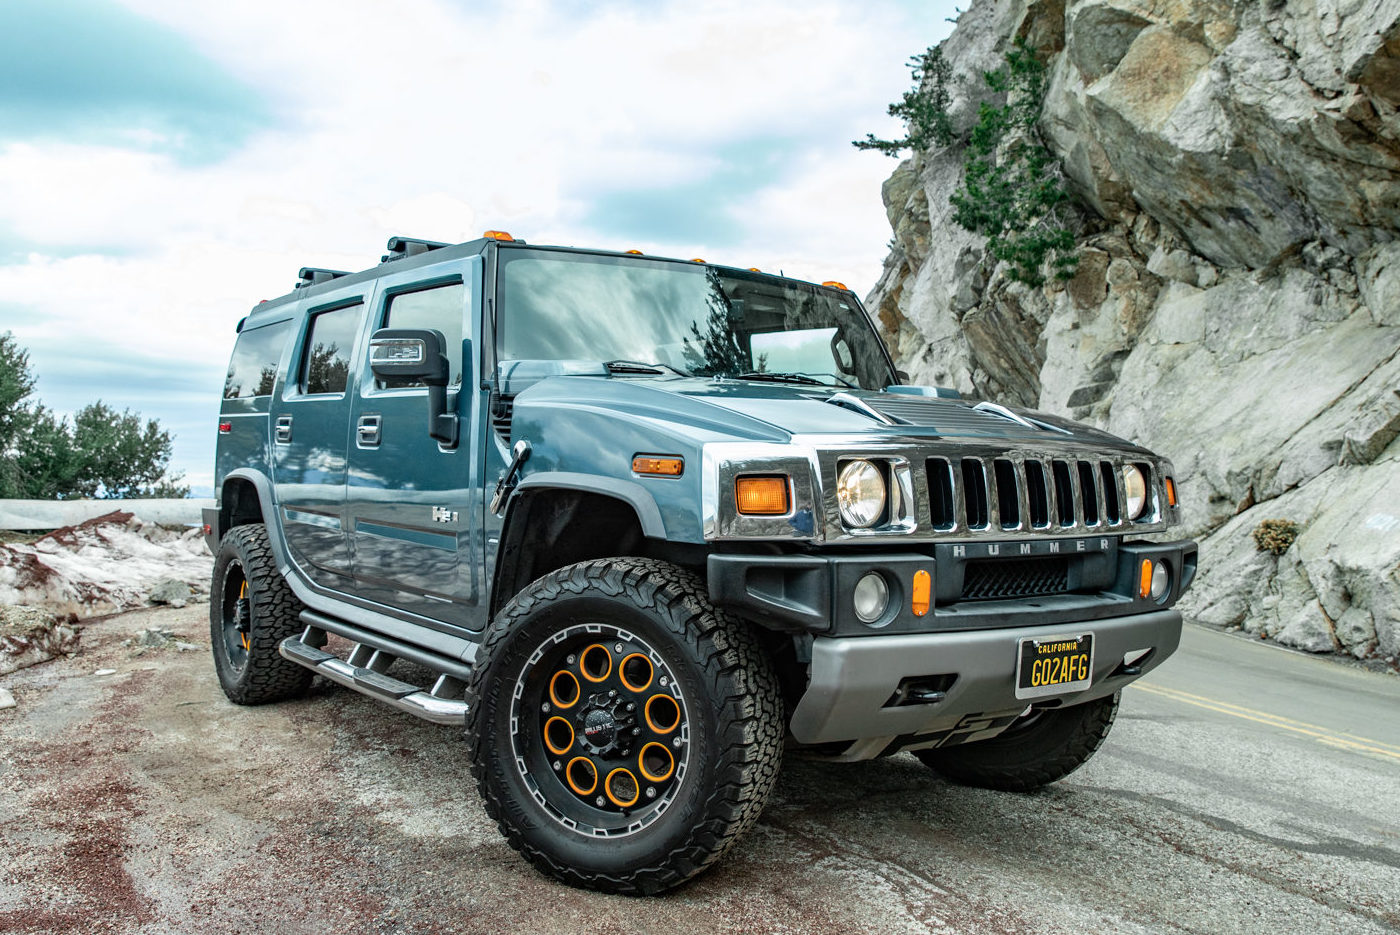 hight resolution of no reserve 2008 hummer h2 for sale on bat auctions sold for 23 250 on may 15 2019 lot 18 852 bring a trailer